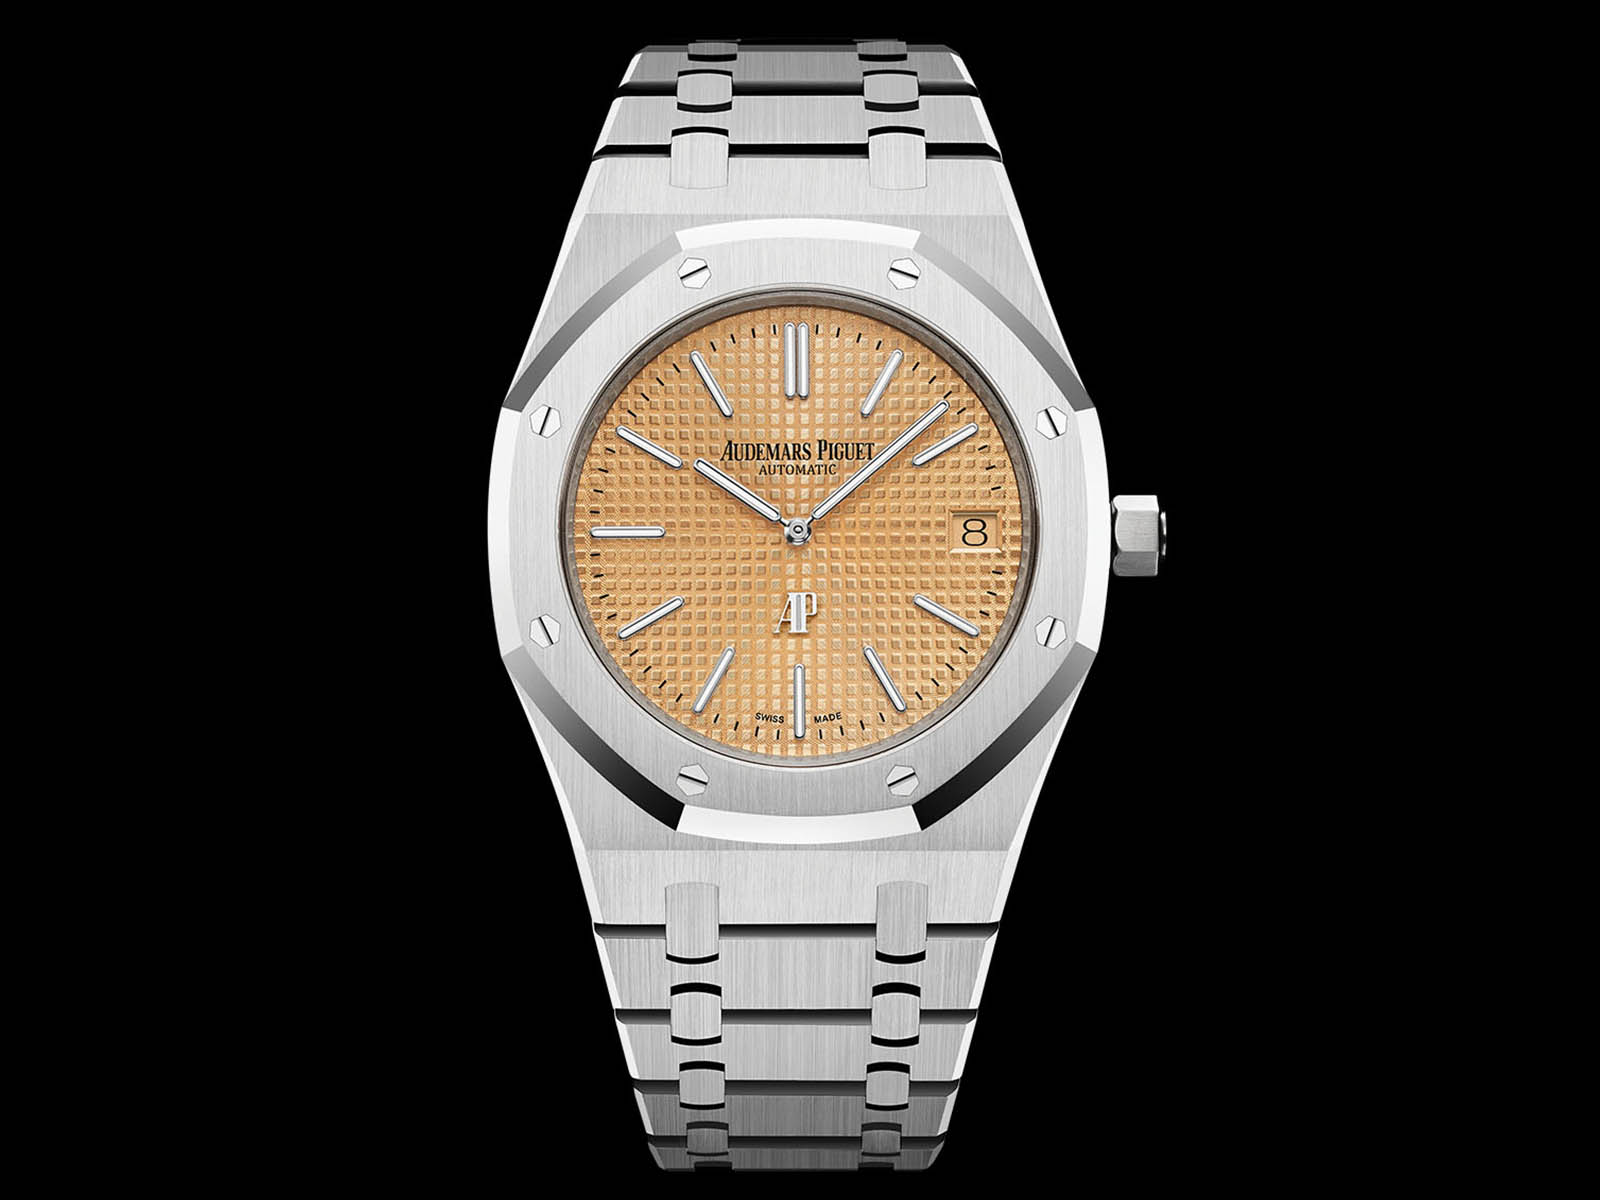 15202bc-oo-1240bc-01-audemars-piguet-royal-oak-jumbo-extra-thin-1.jpg